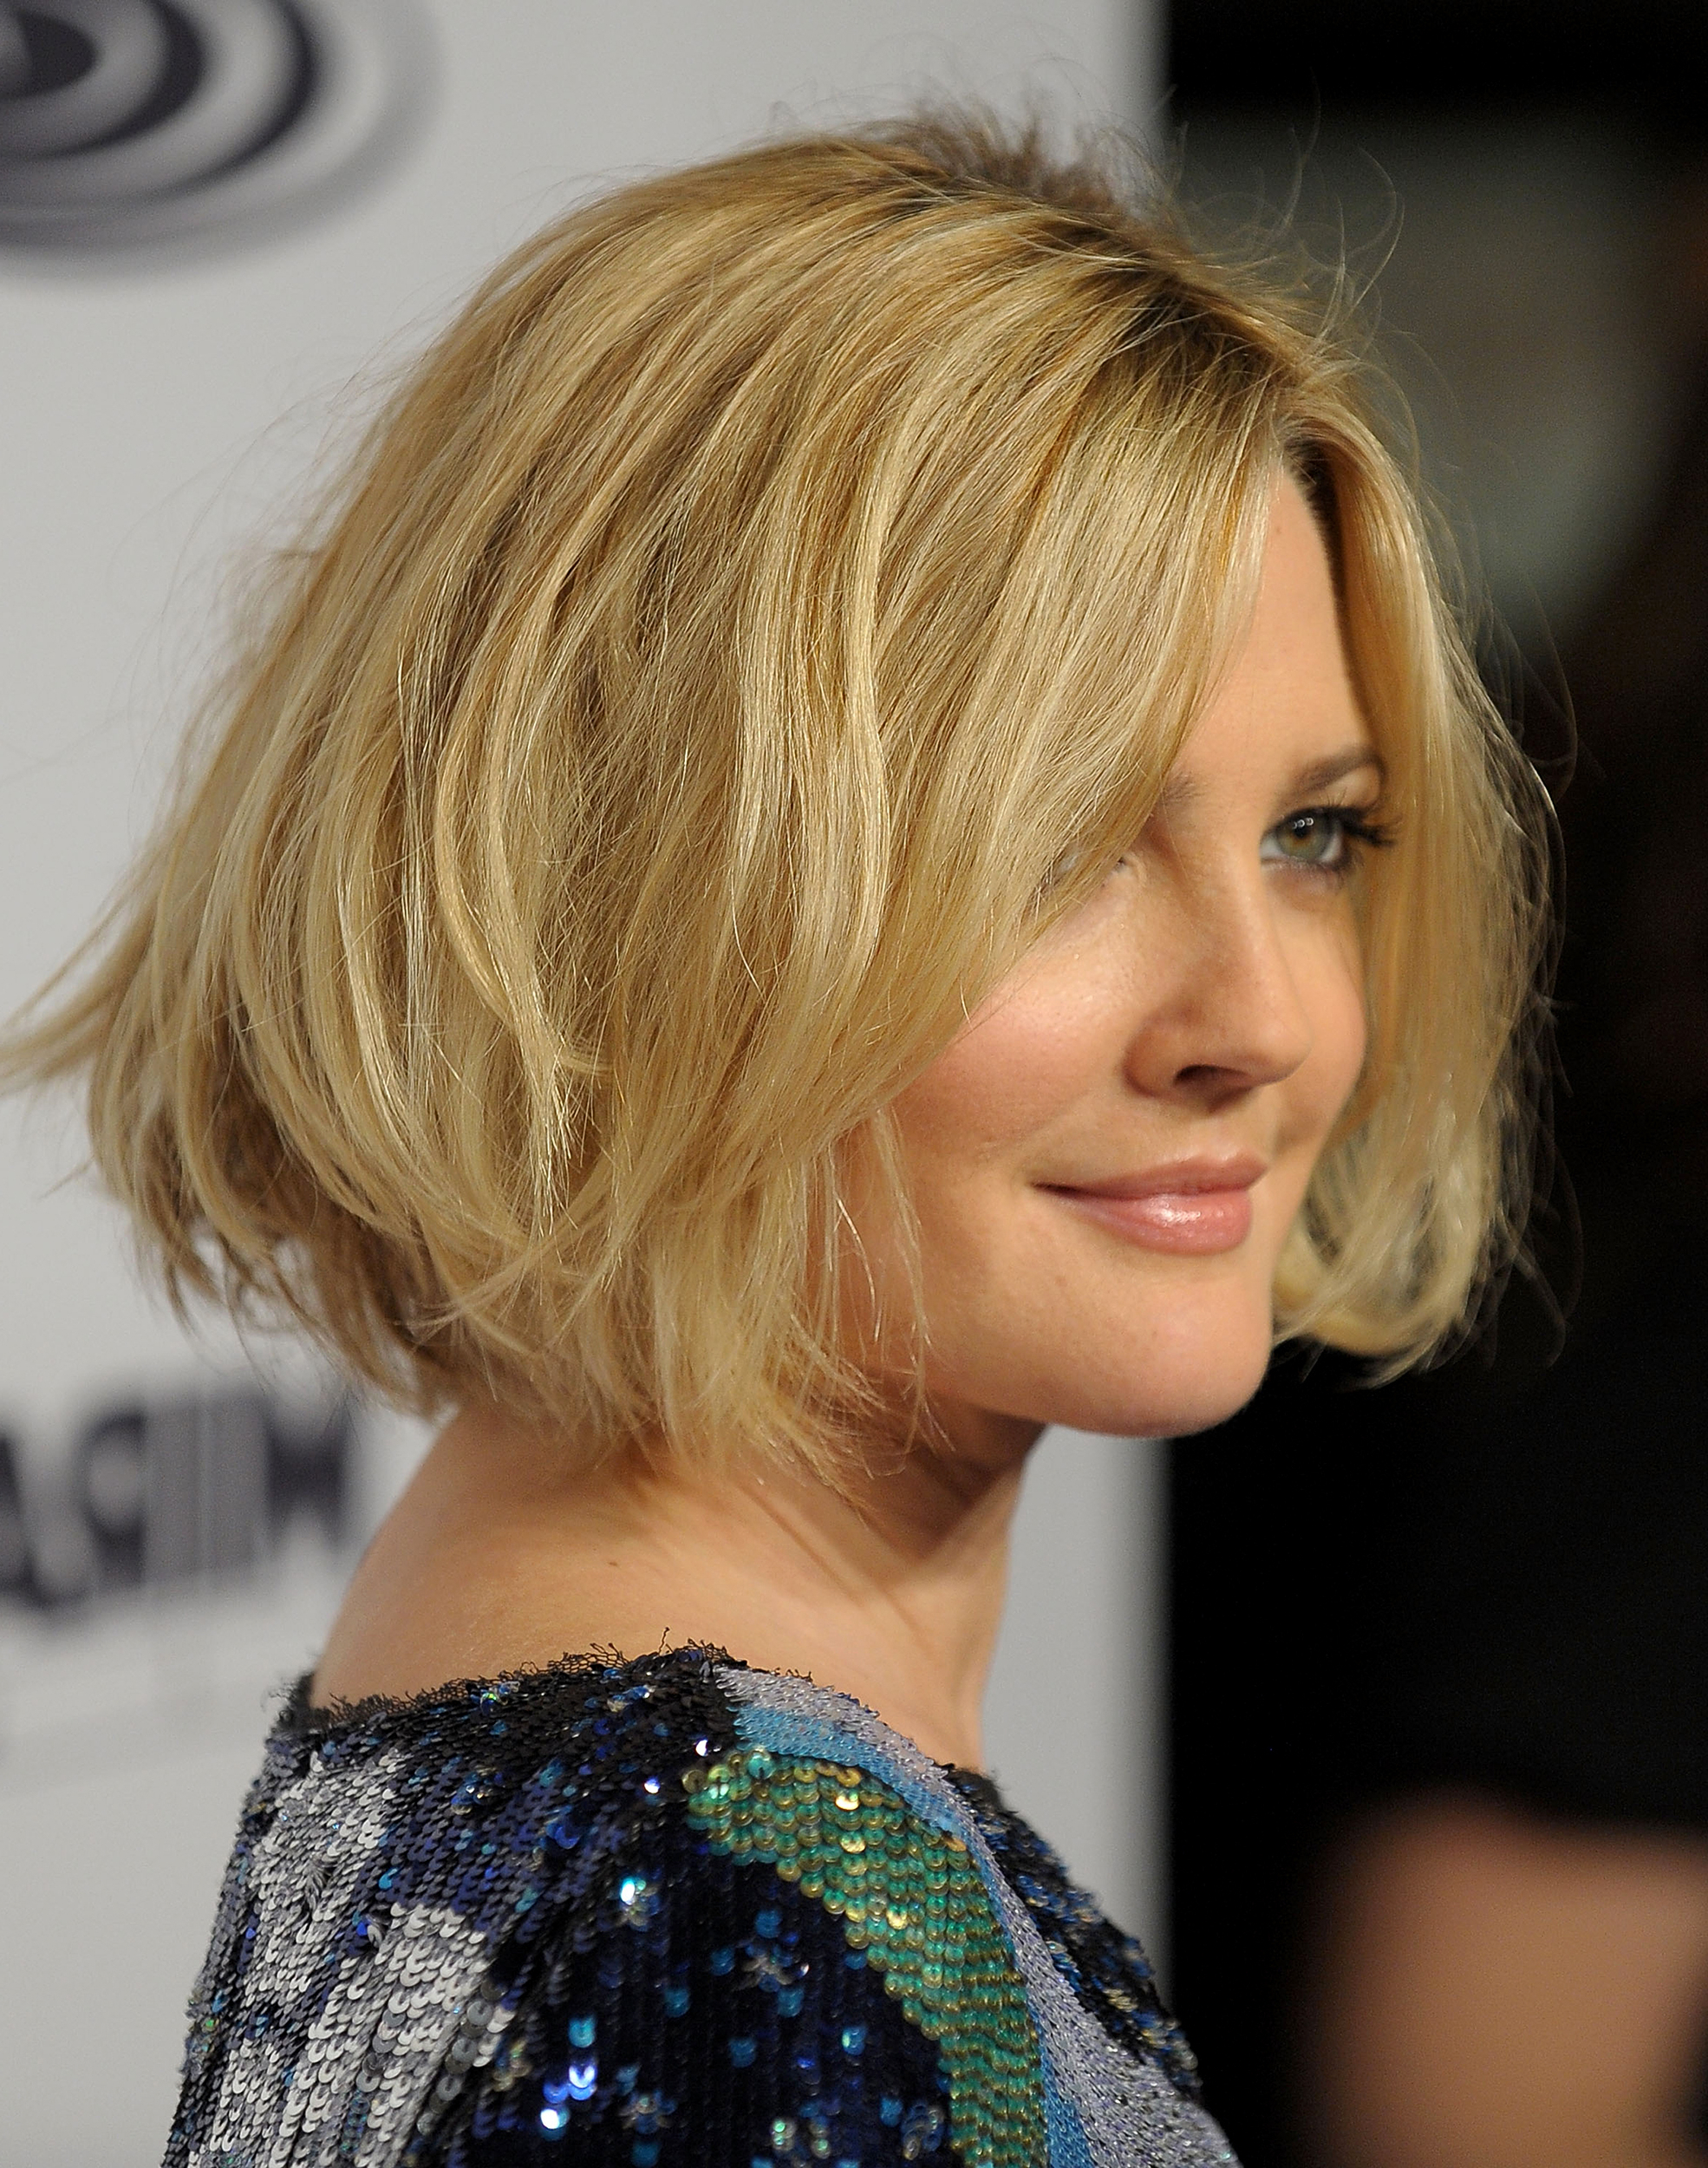 Drew Barrymore's Hair Evolution Pertaining To Drew Barrymore Short Hairstyles (Gallery 5 of 25)